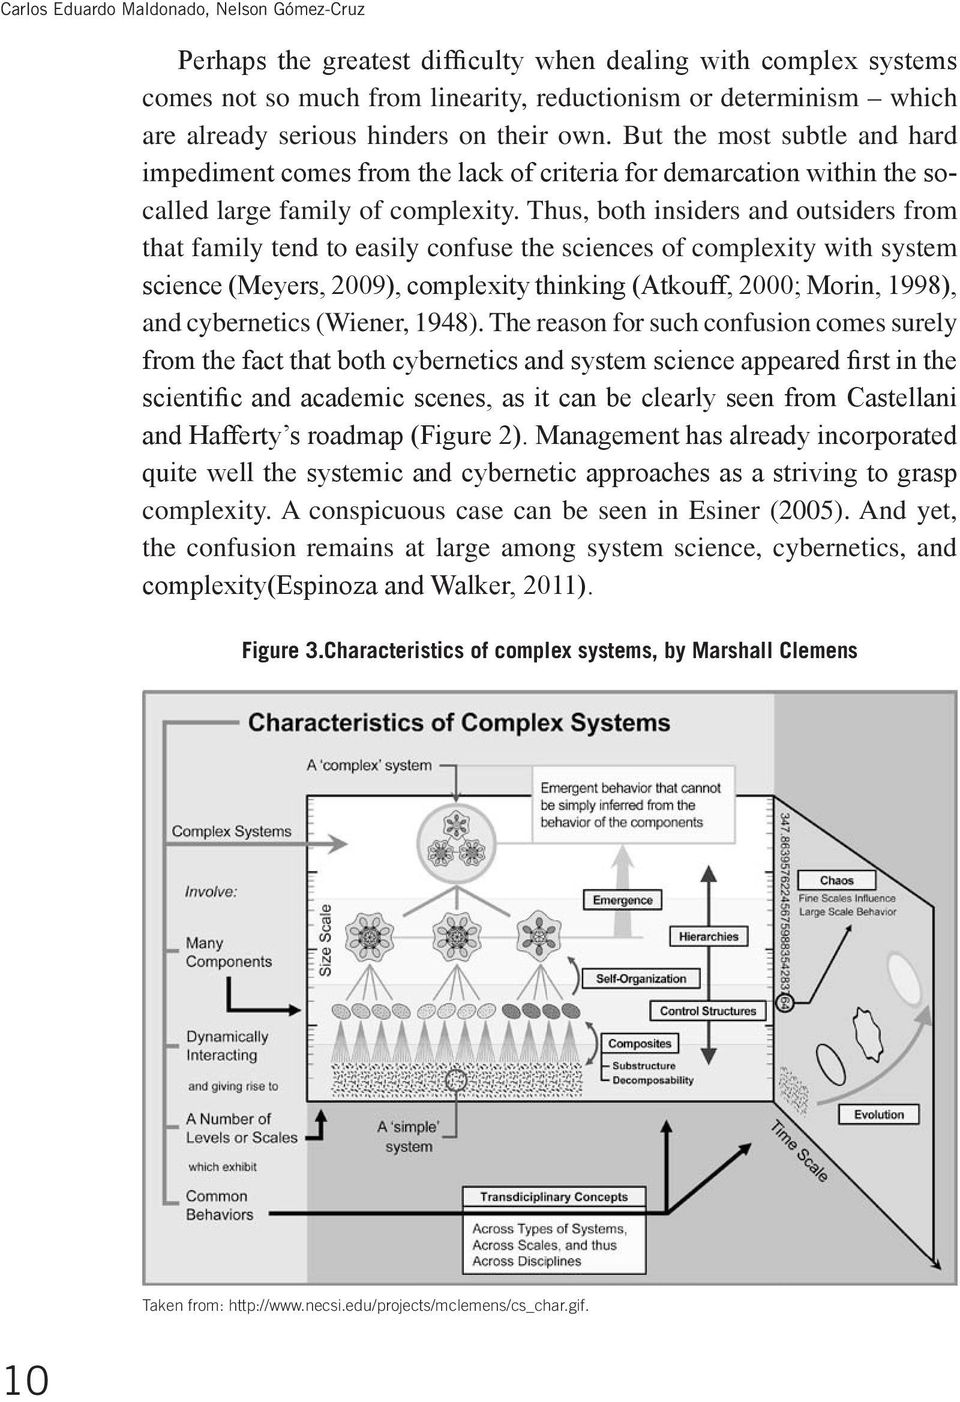 Thus, both insiders and outsiders from that family tend to easily confuse the sciences of complexity with system science (Meyers, 2009), complexity thinking (Atkouff, 2000; Morin, 1998), and